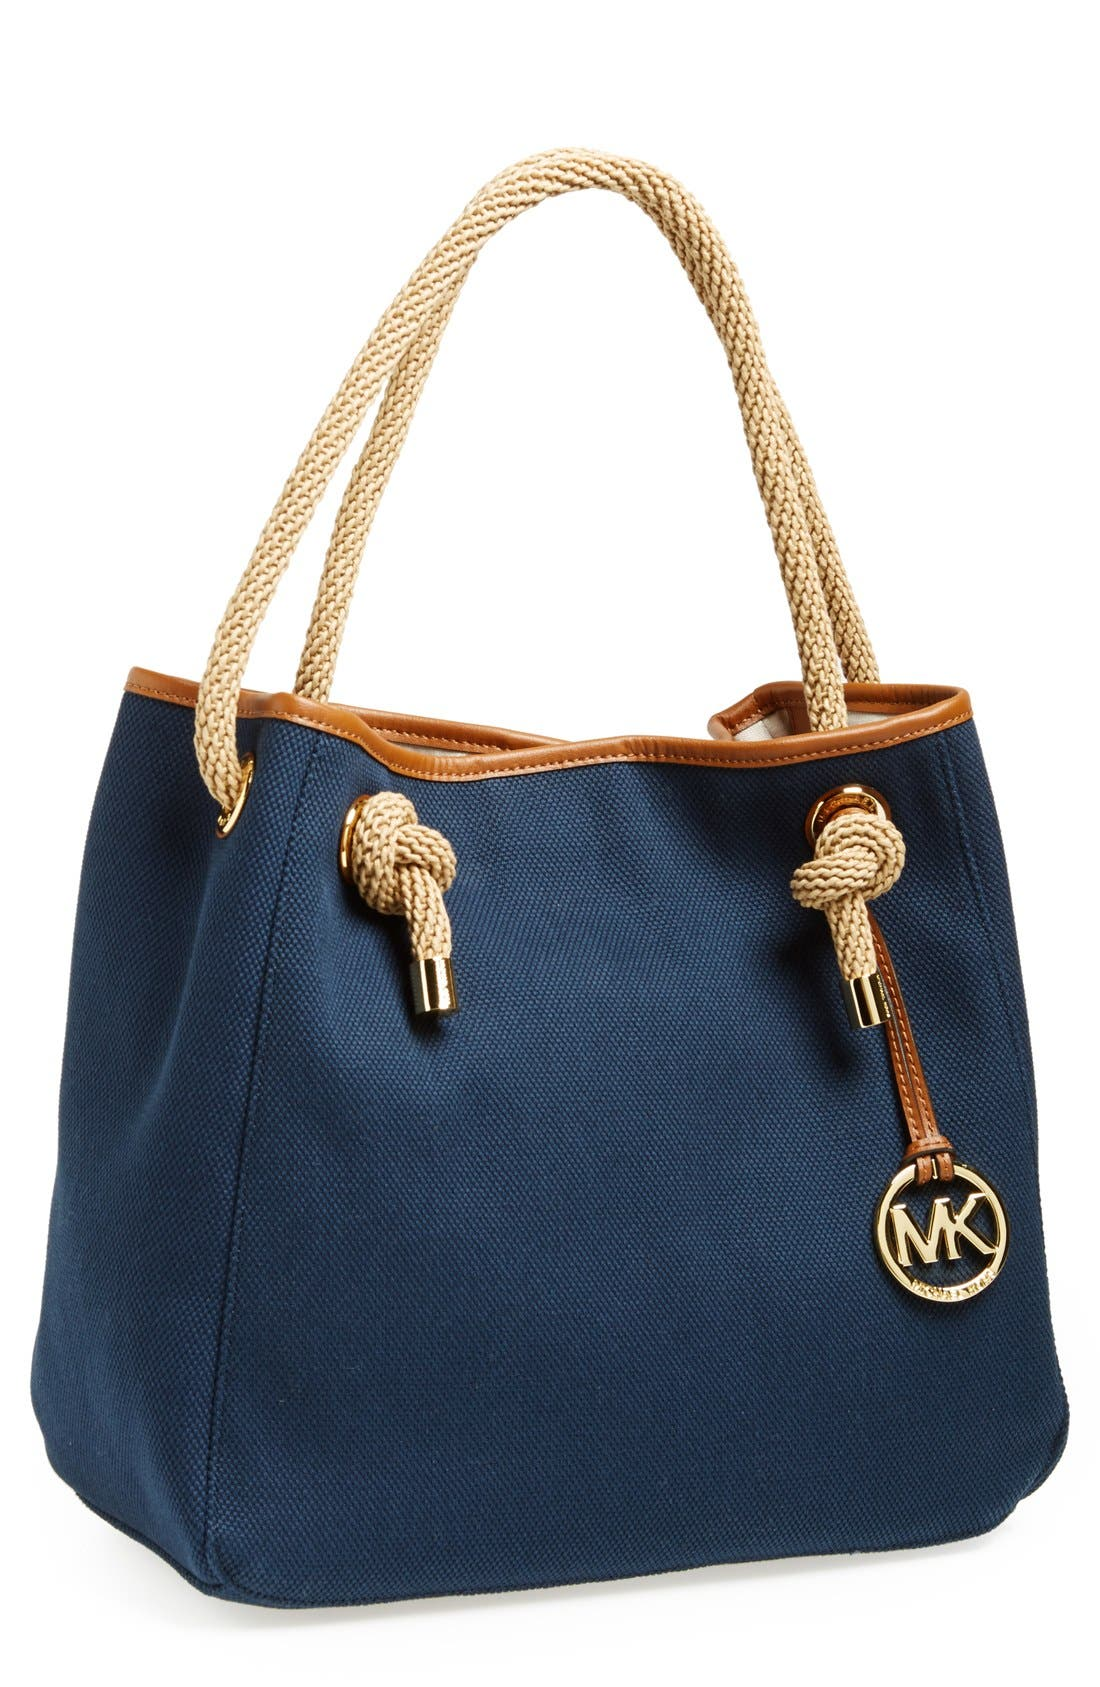 Alternate Image 1 Selected - MICHAEL Michael Kors 'Large Marina' Grab Bag